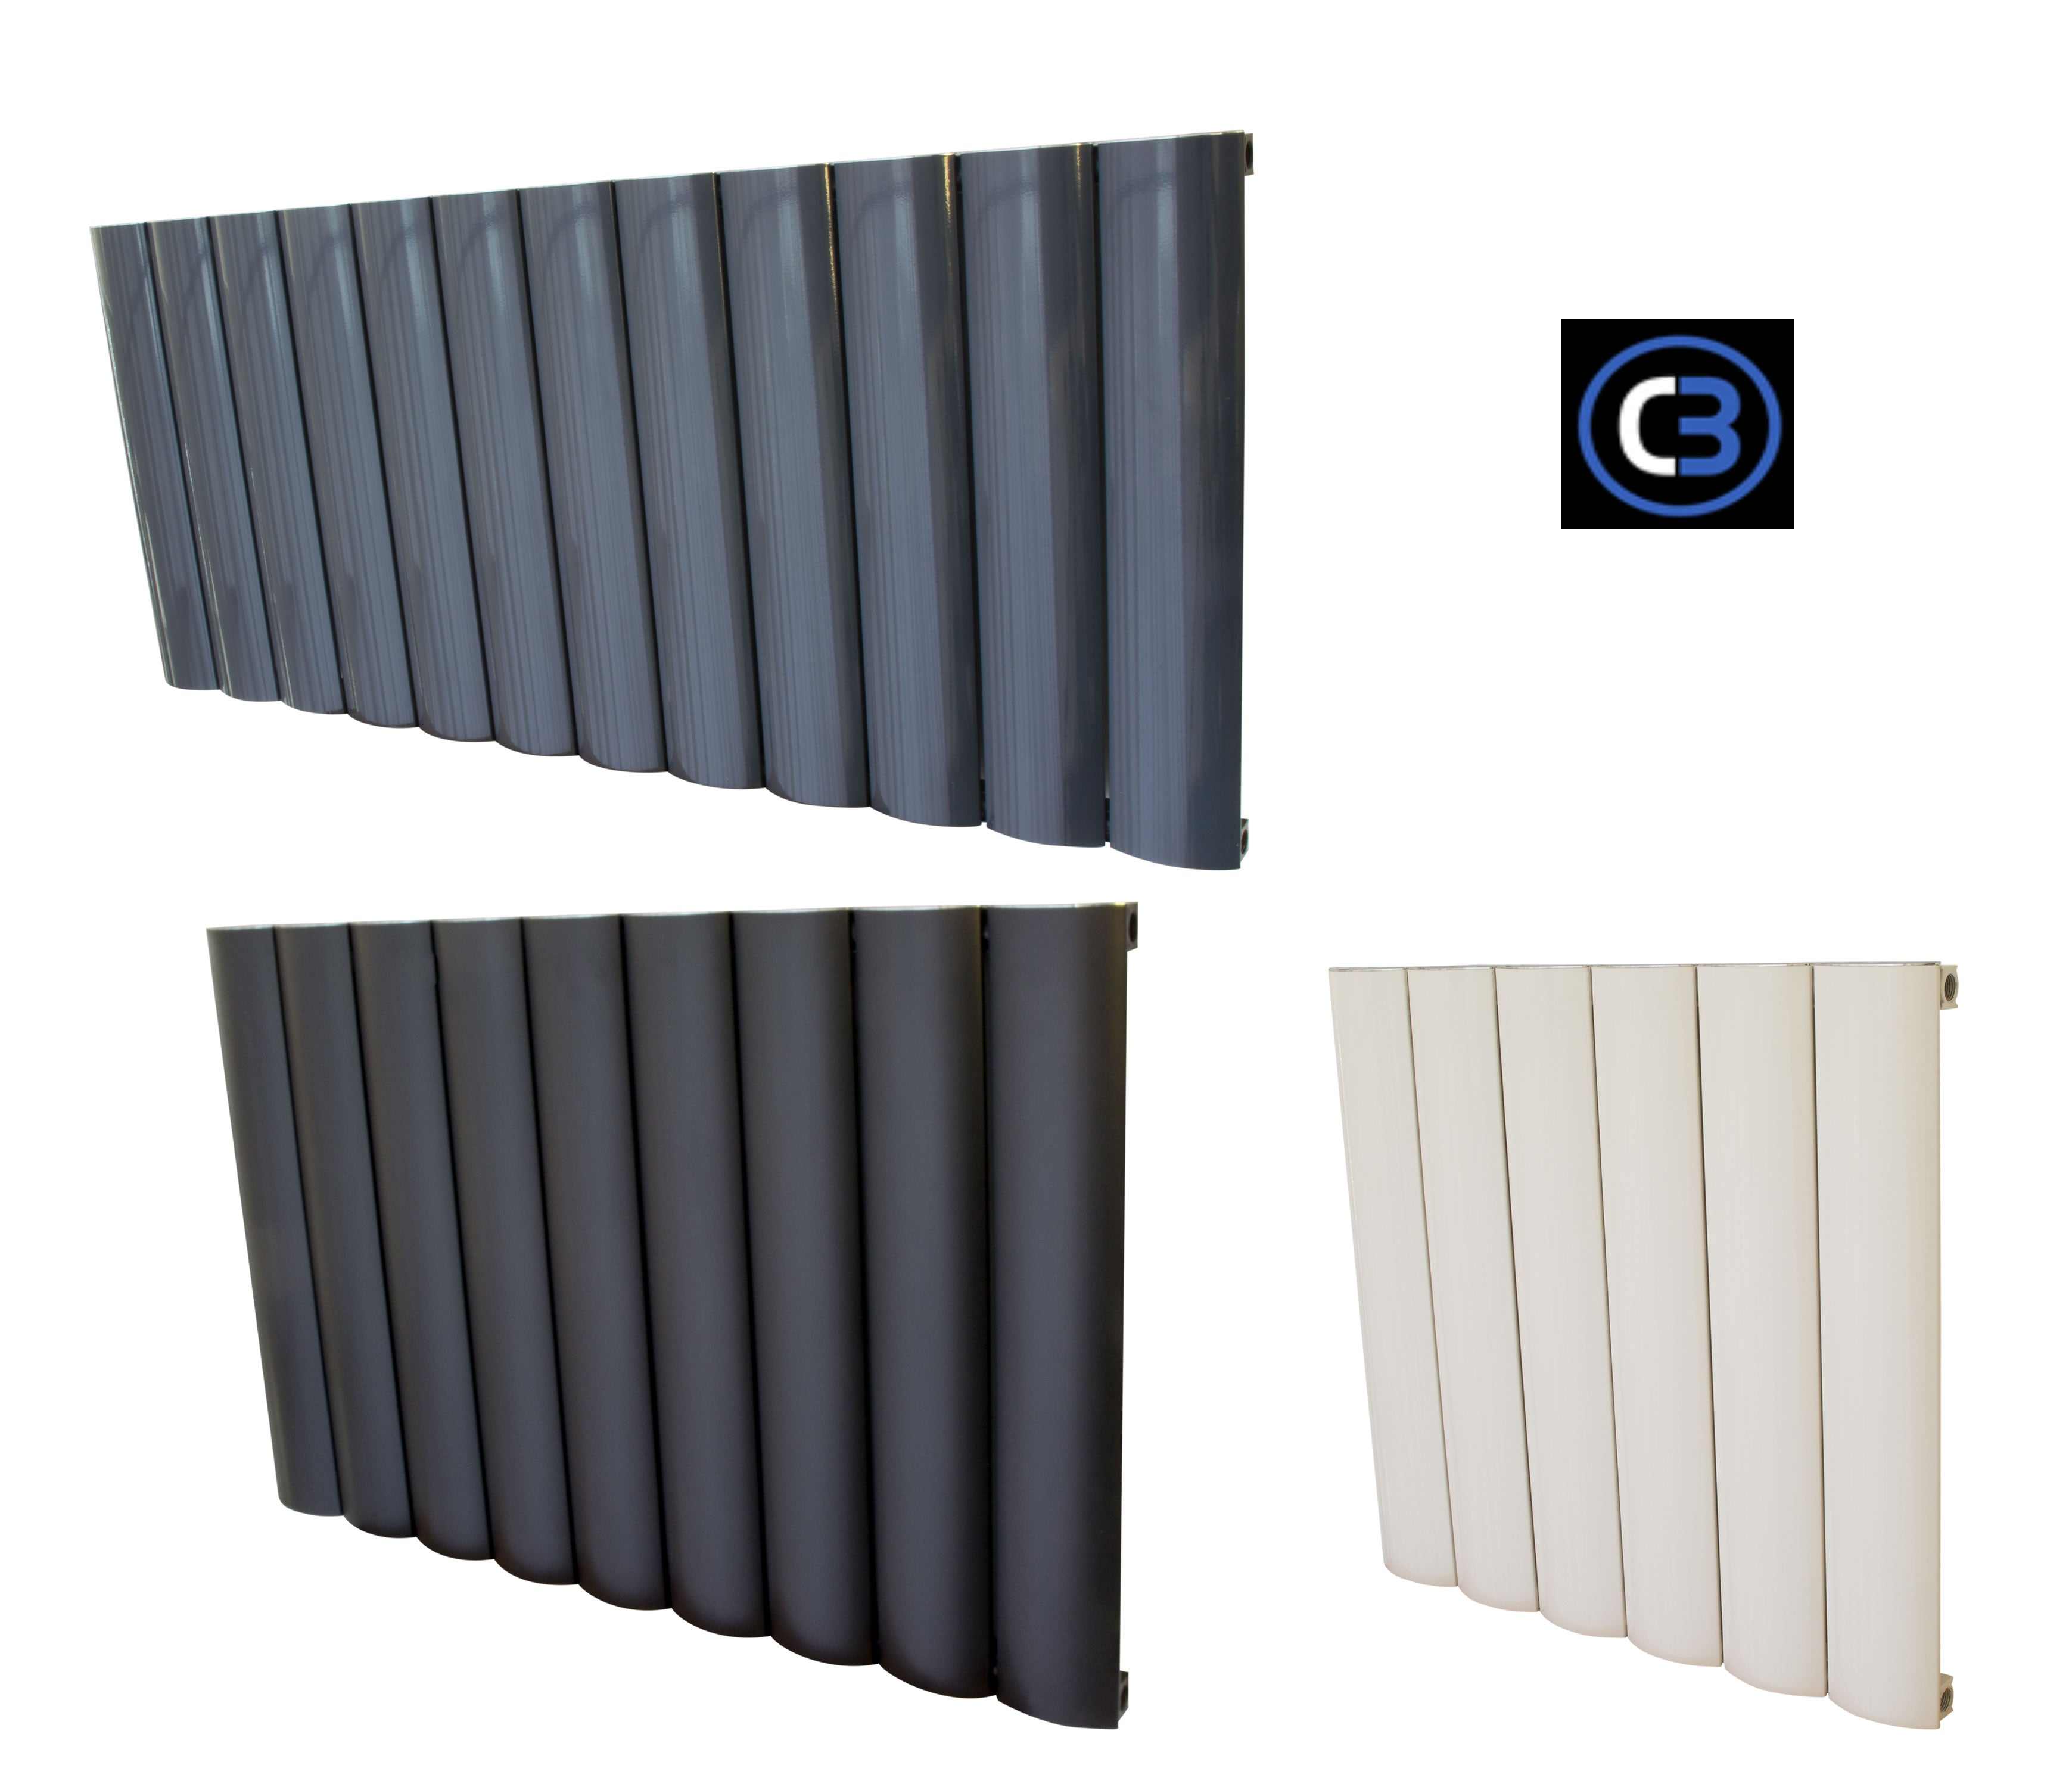 Horizontal Aluminium Radiator Oval Panel Heater - White & Black & Grey